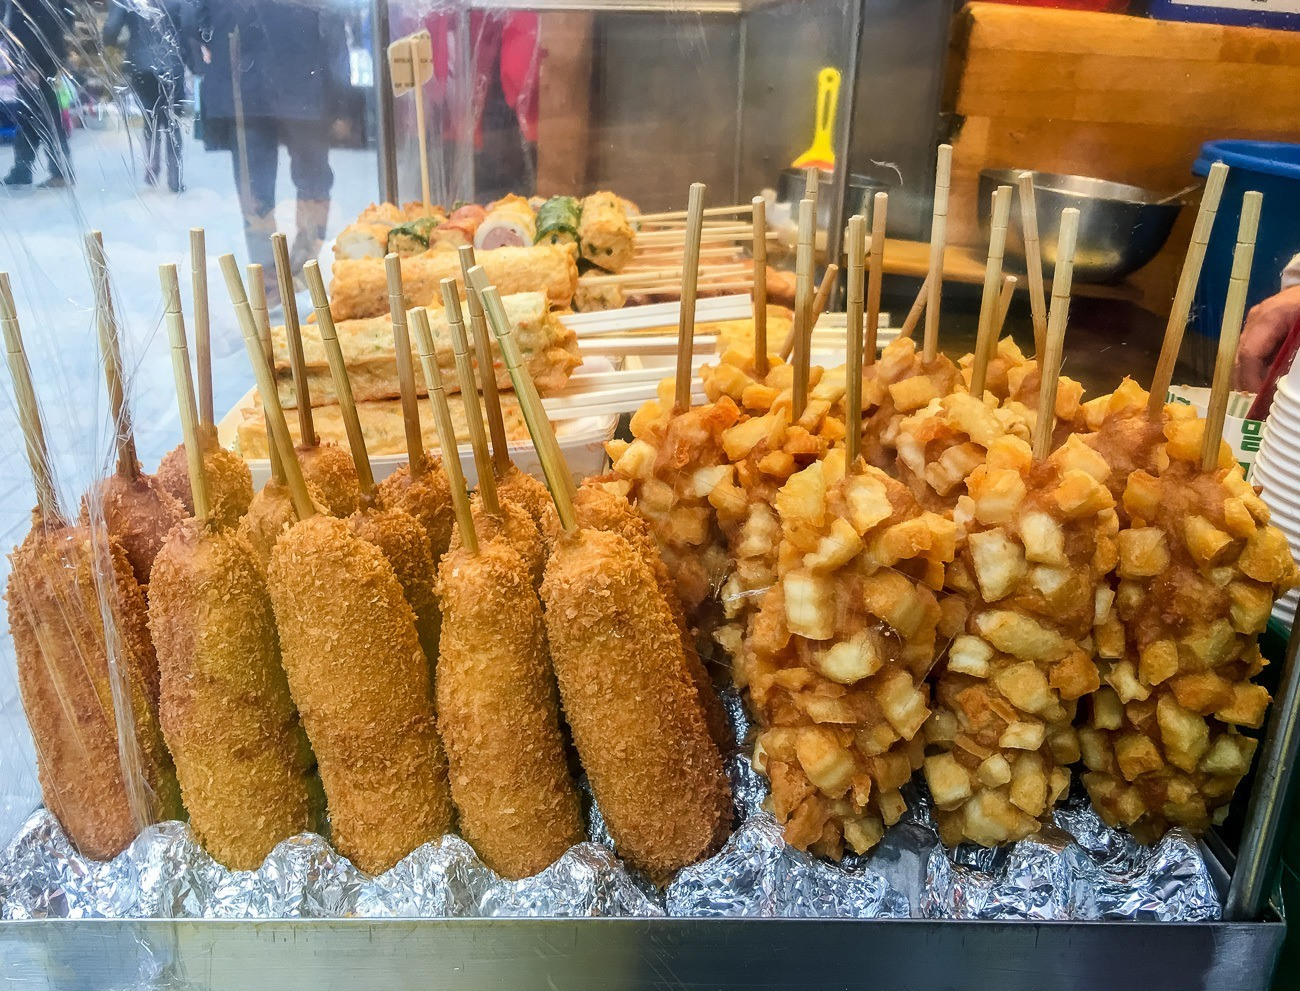 Namdaemun Market in Seoul also have amazing street food, like corn dogs covered in french fries.